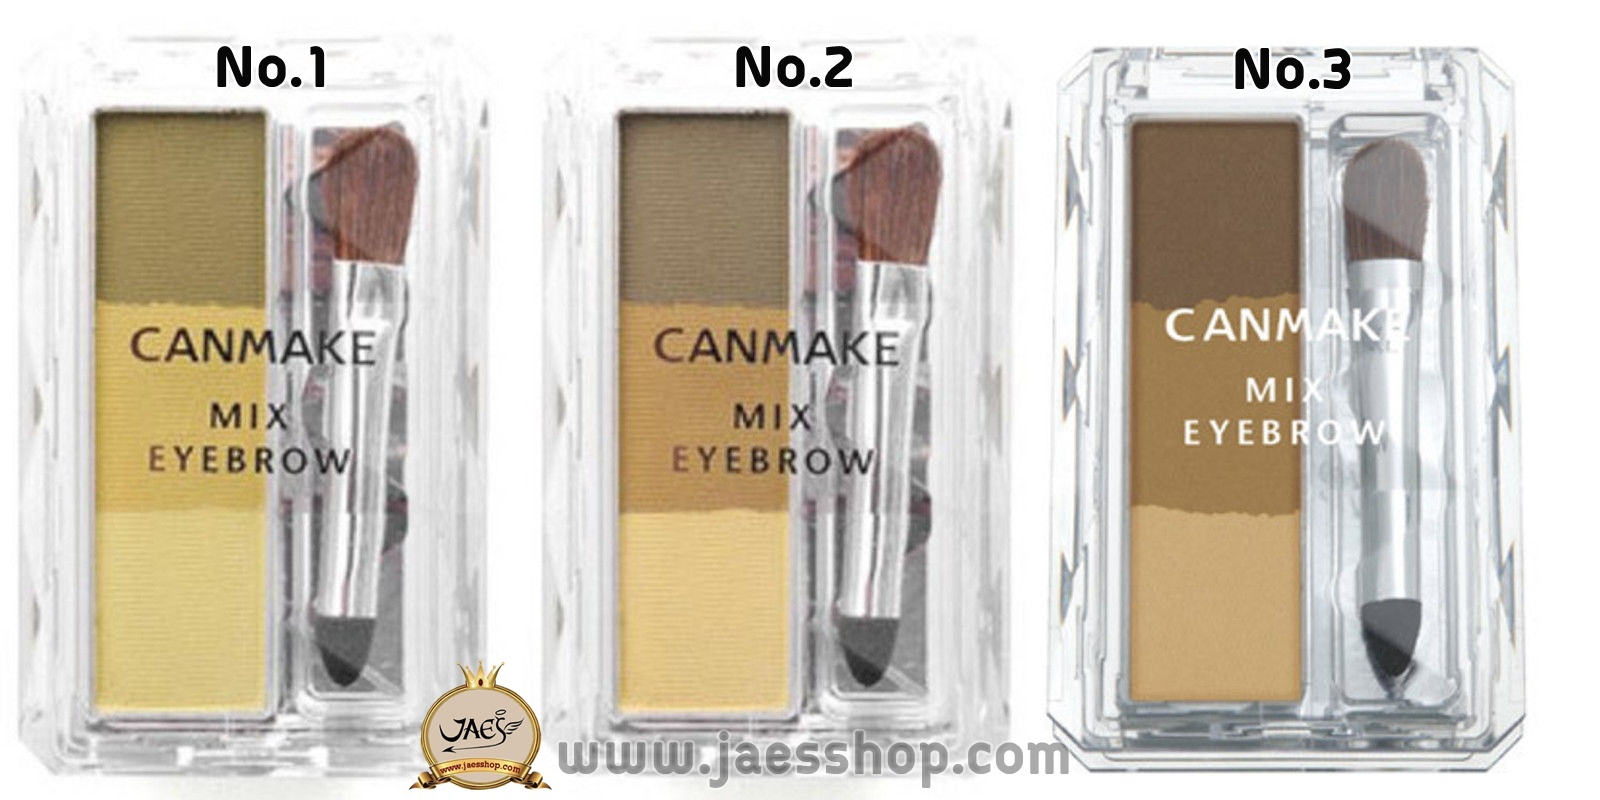 Canmake - Mix Eyebrow #No.01 Yellow Brown